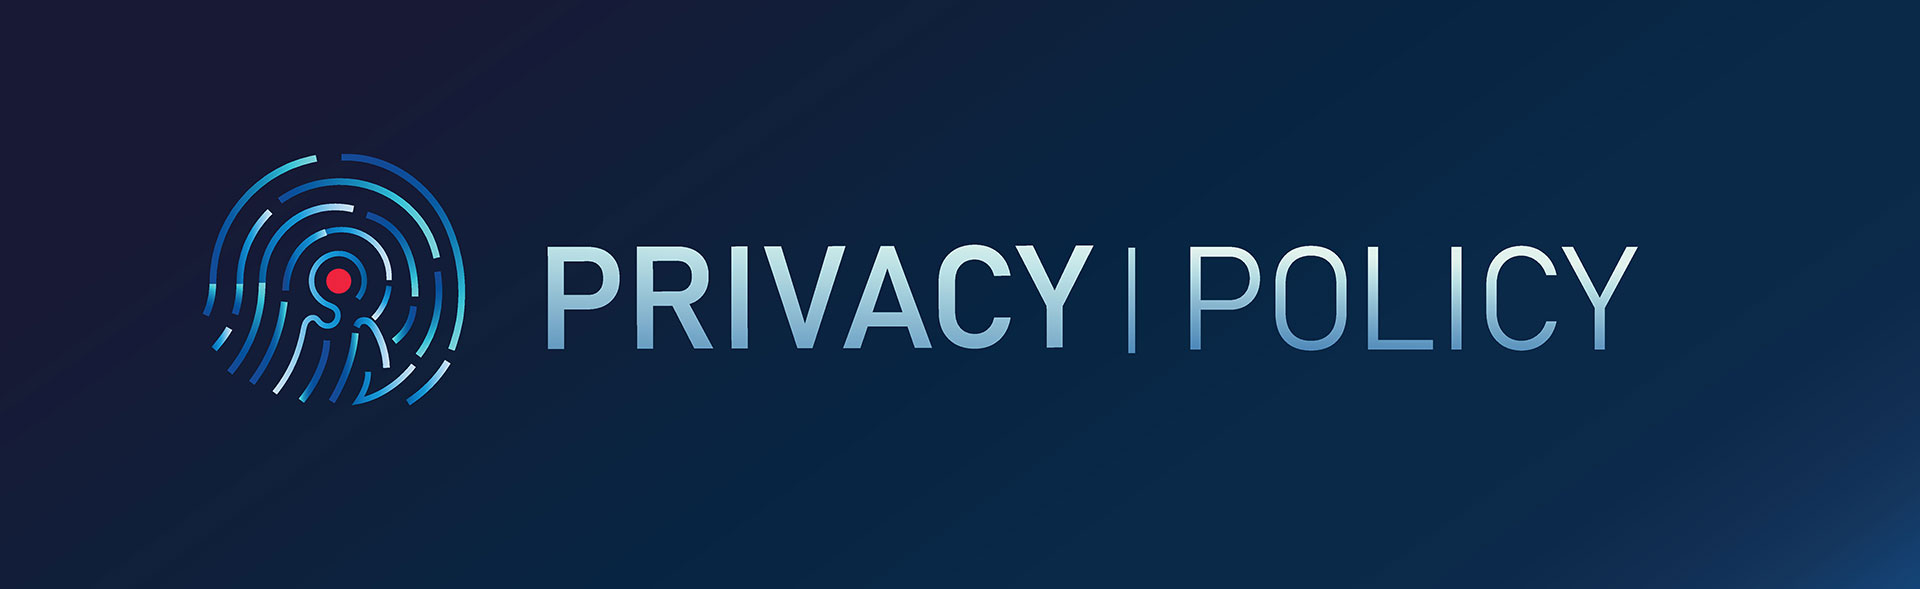 1 Source Insurance Group Privacy Policy